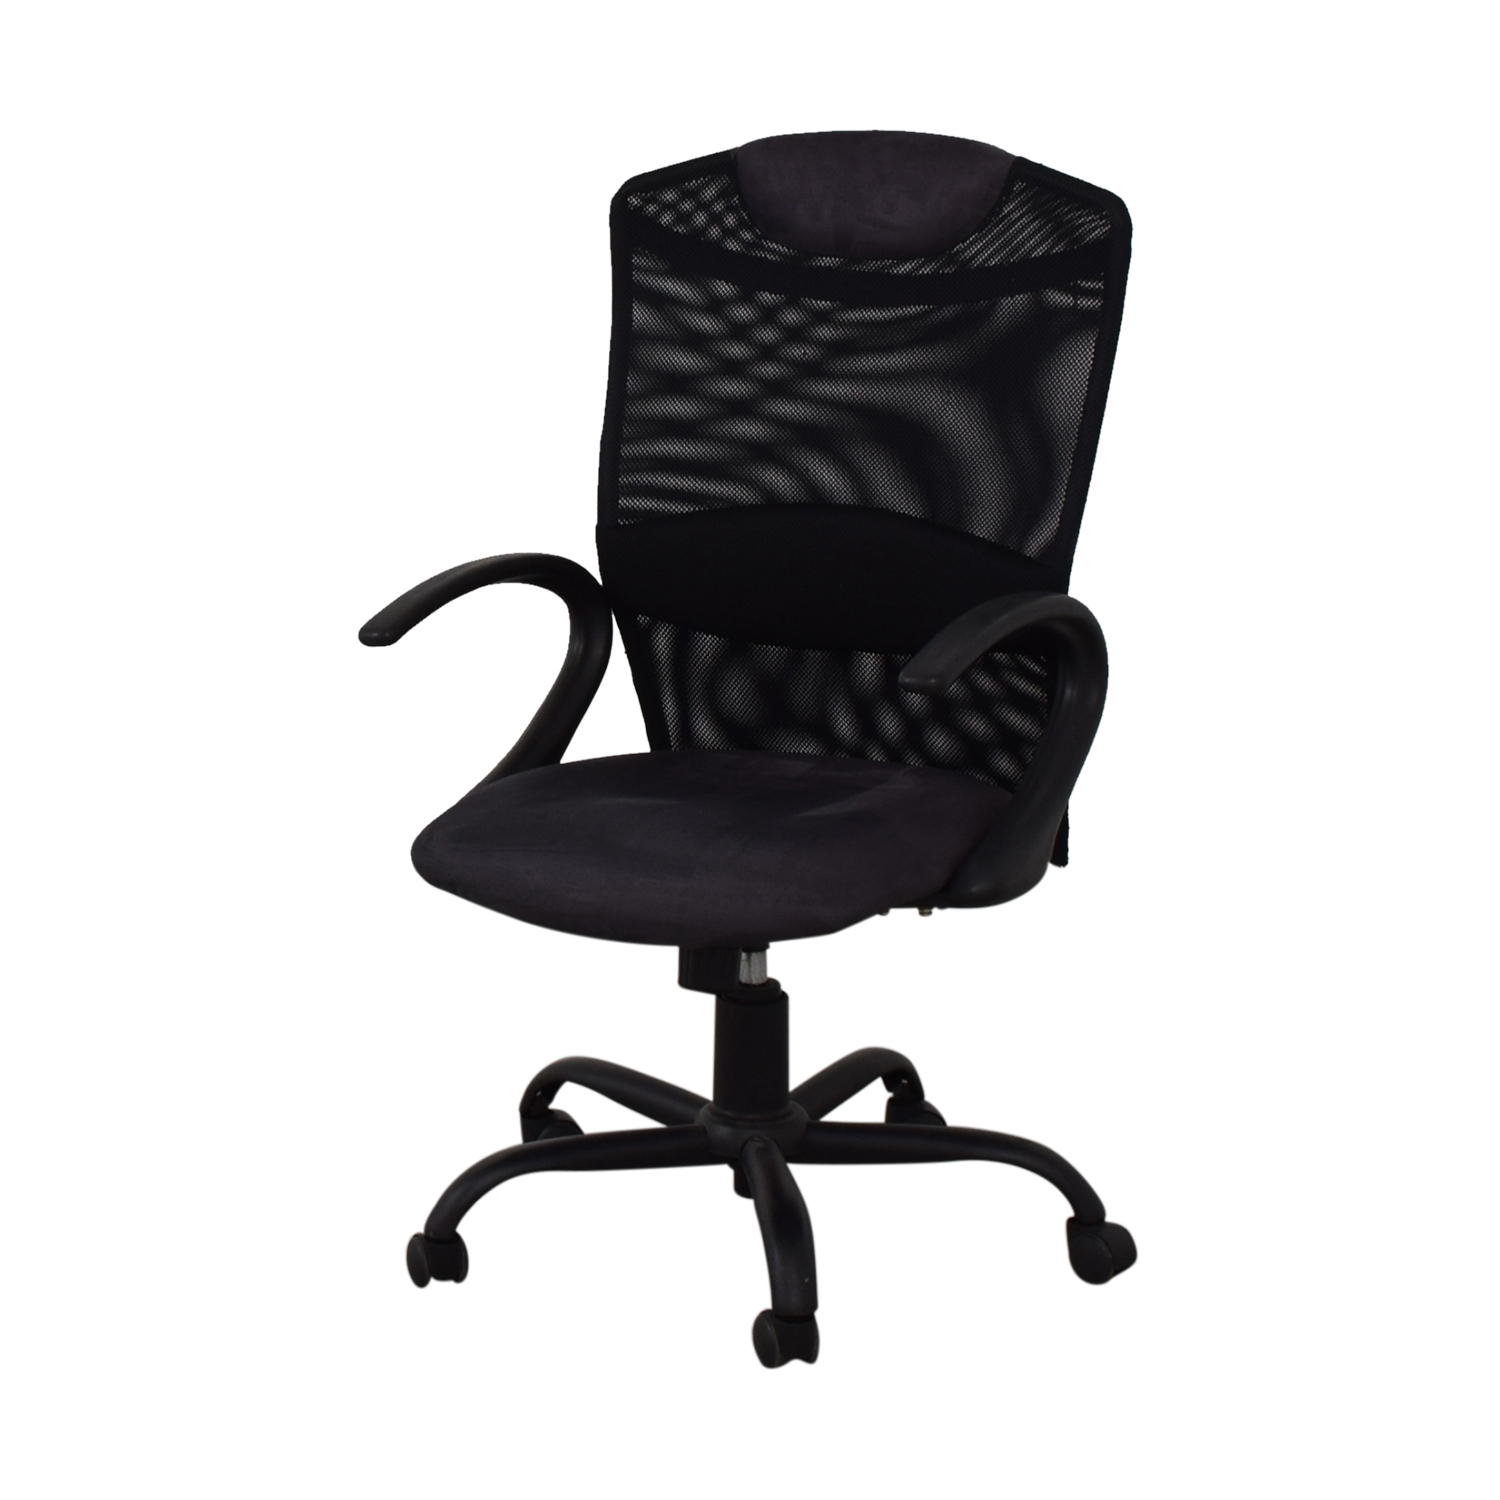 shop  Black Ergonomic Desk Chair online